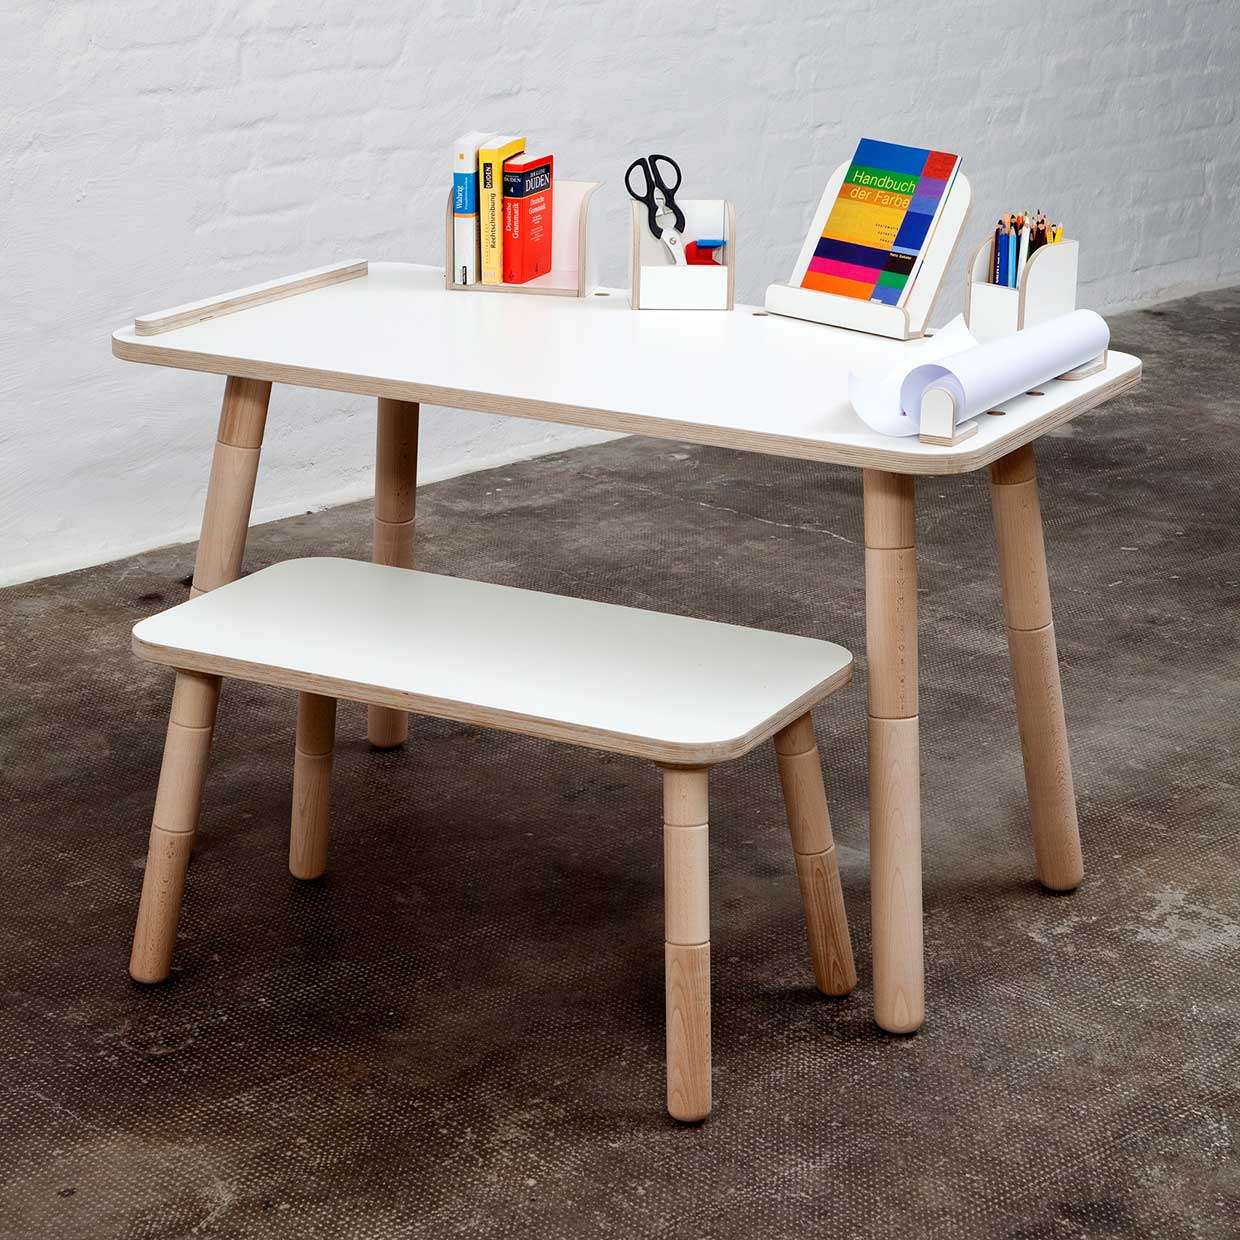 growing table – desk for children that grows with them -